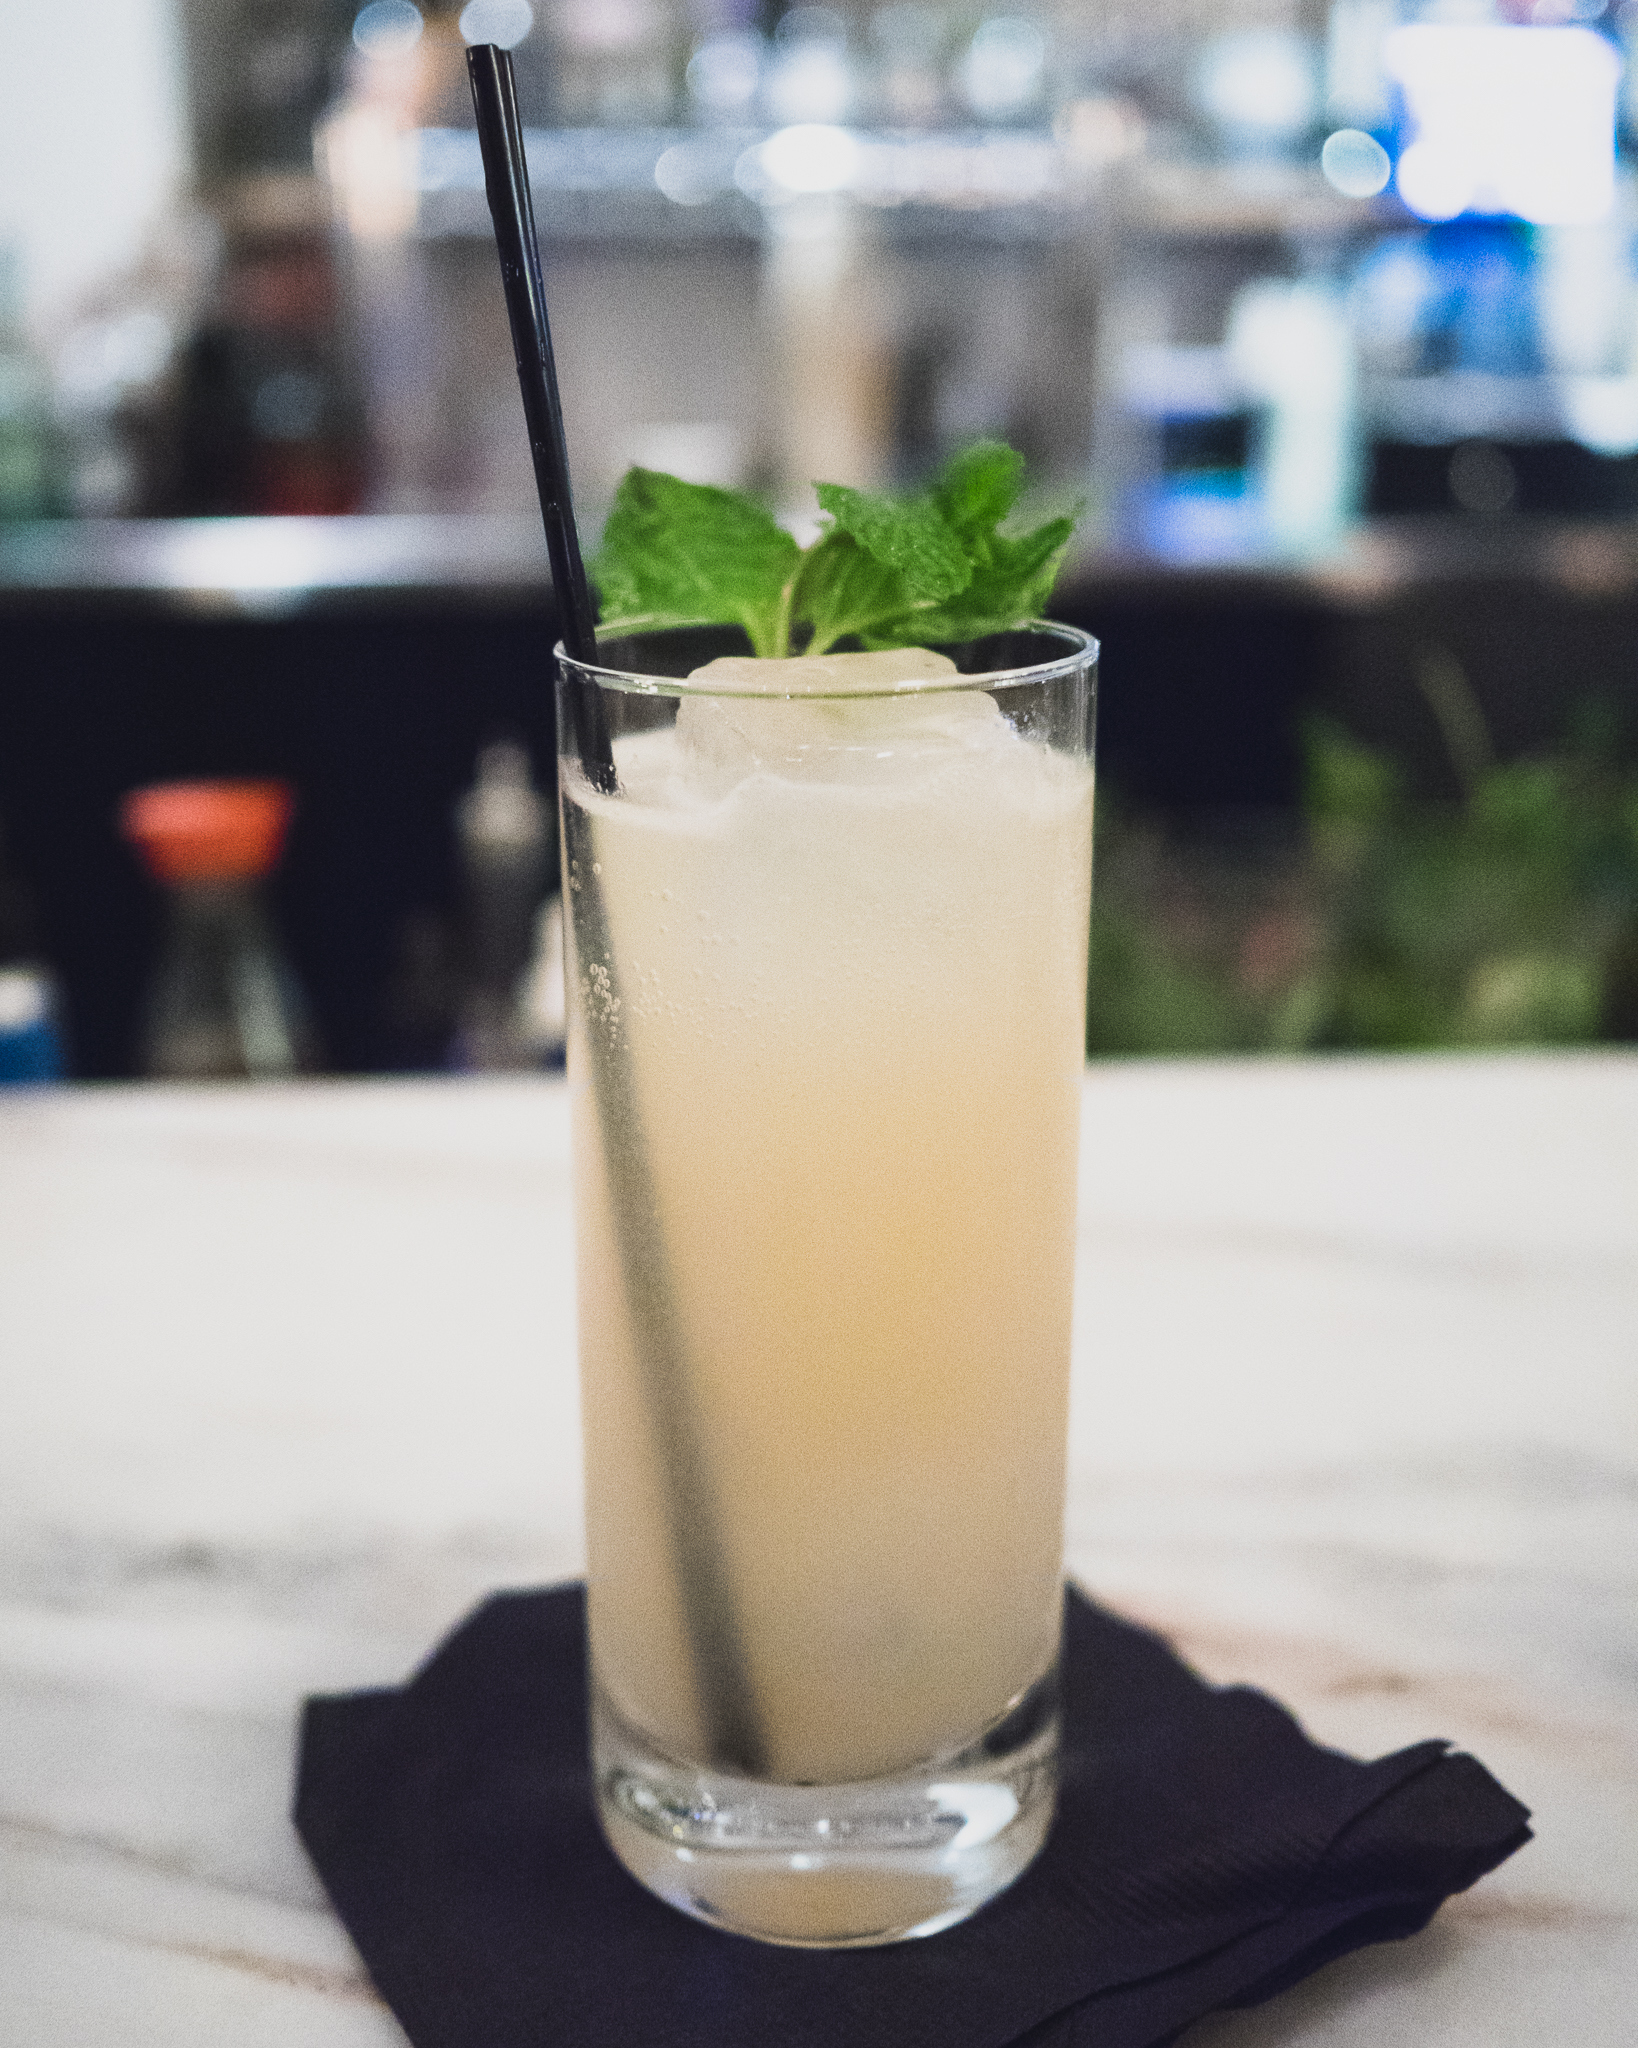 banana mule : banana infused gin, galangal/ginger/lemongrass syrup, mint, lime